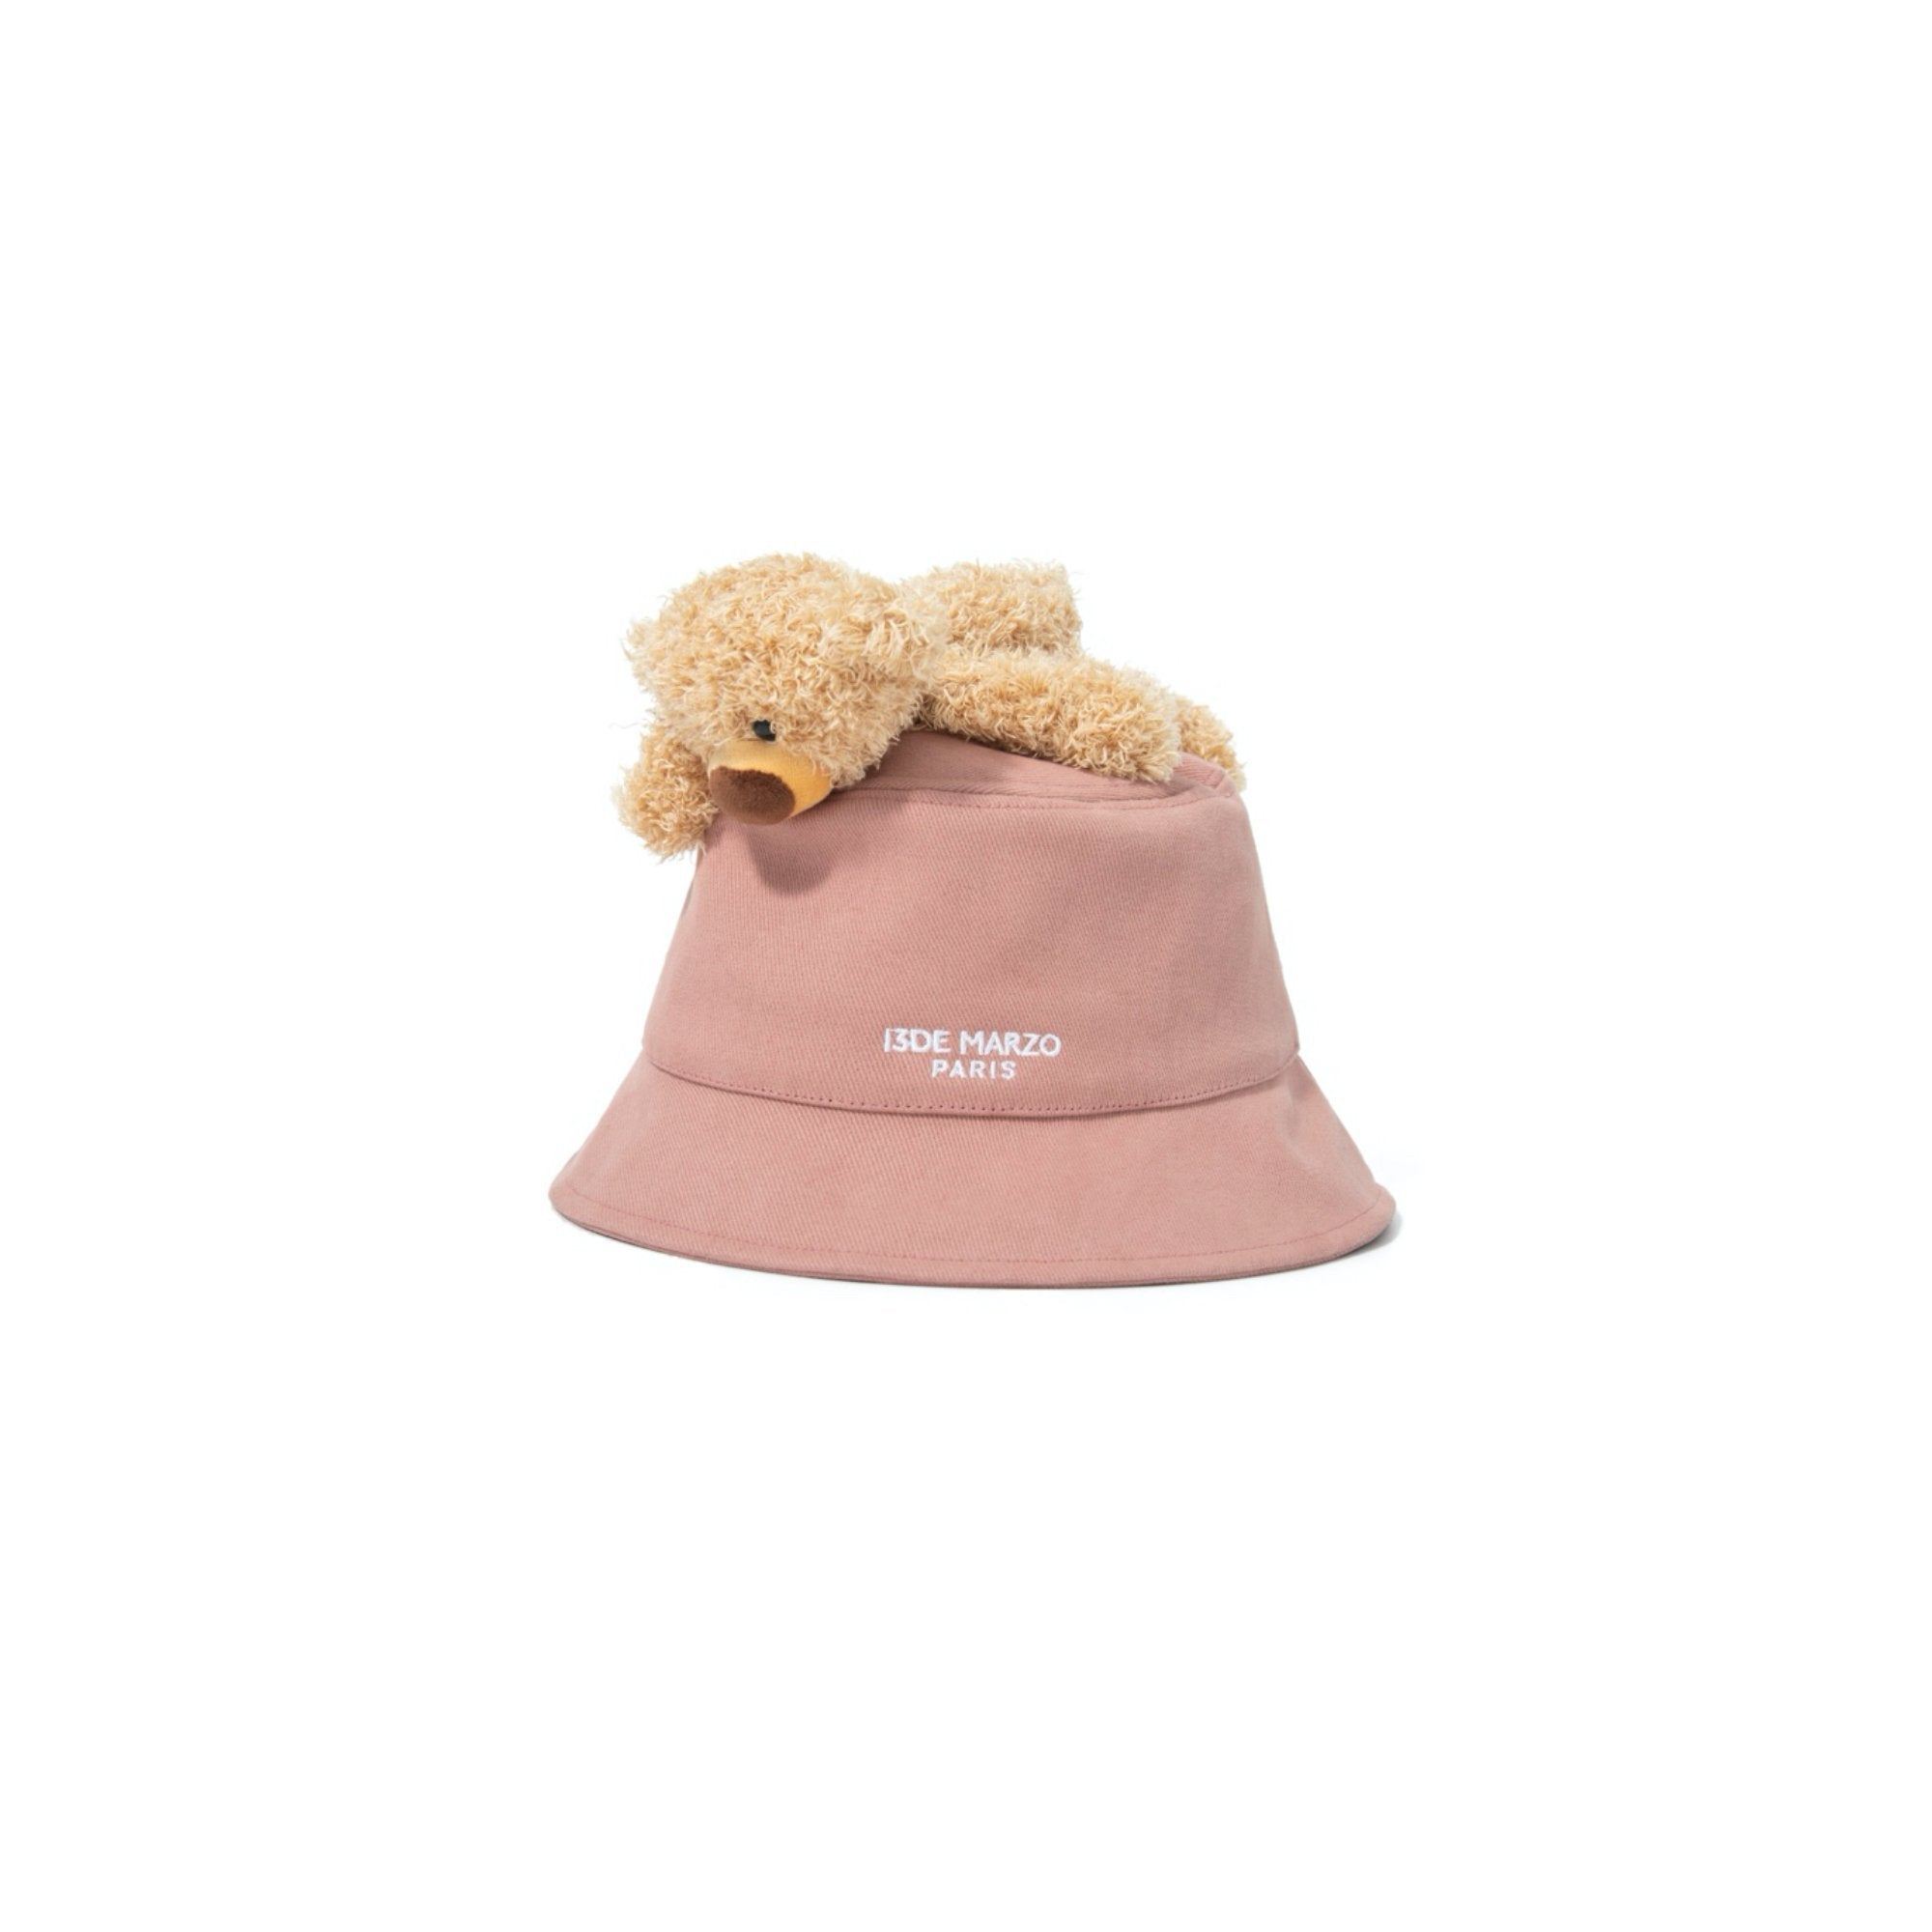 13 DE MARZO Lazy Teddy Bear Bucket Hat Coral Cloud | MADA IN CHINA